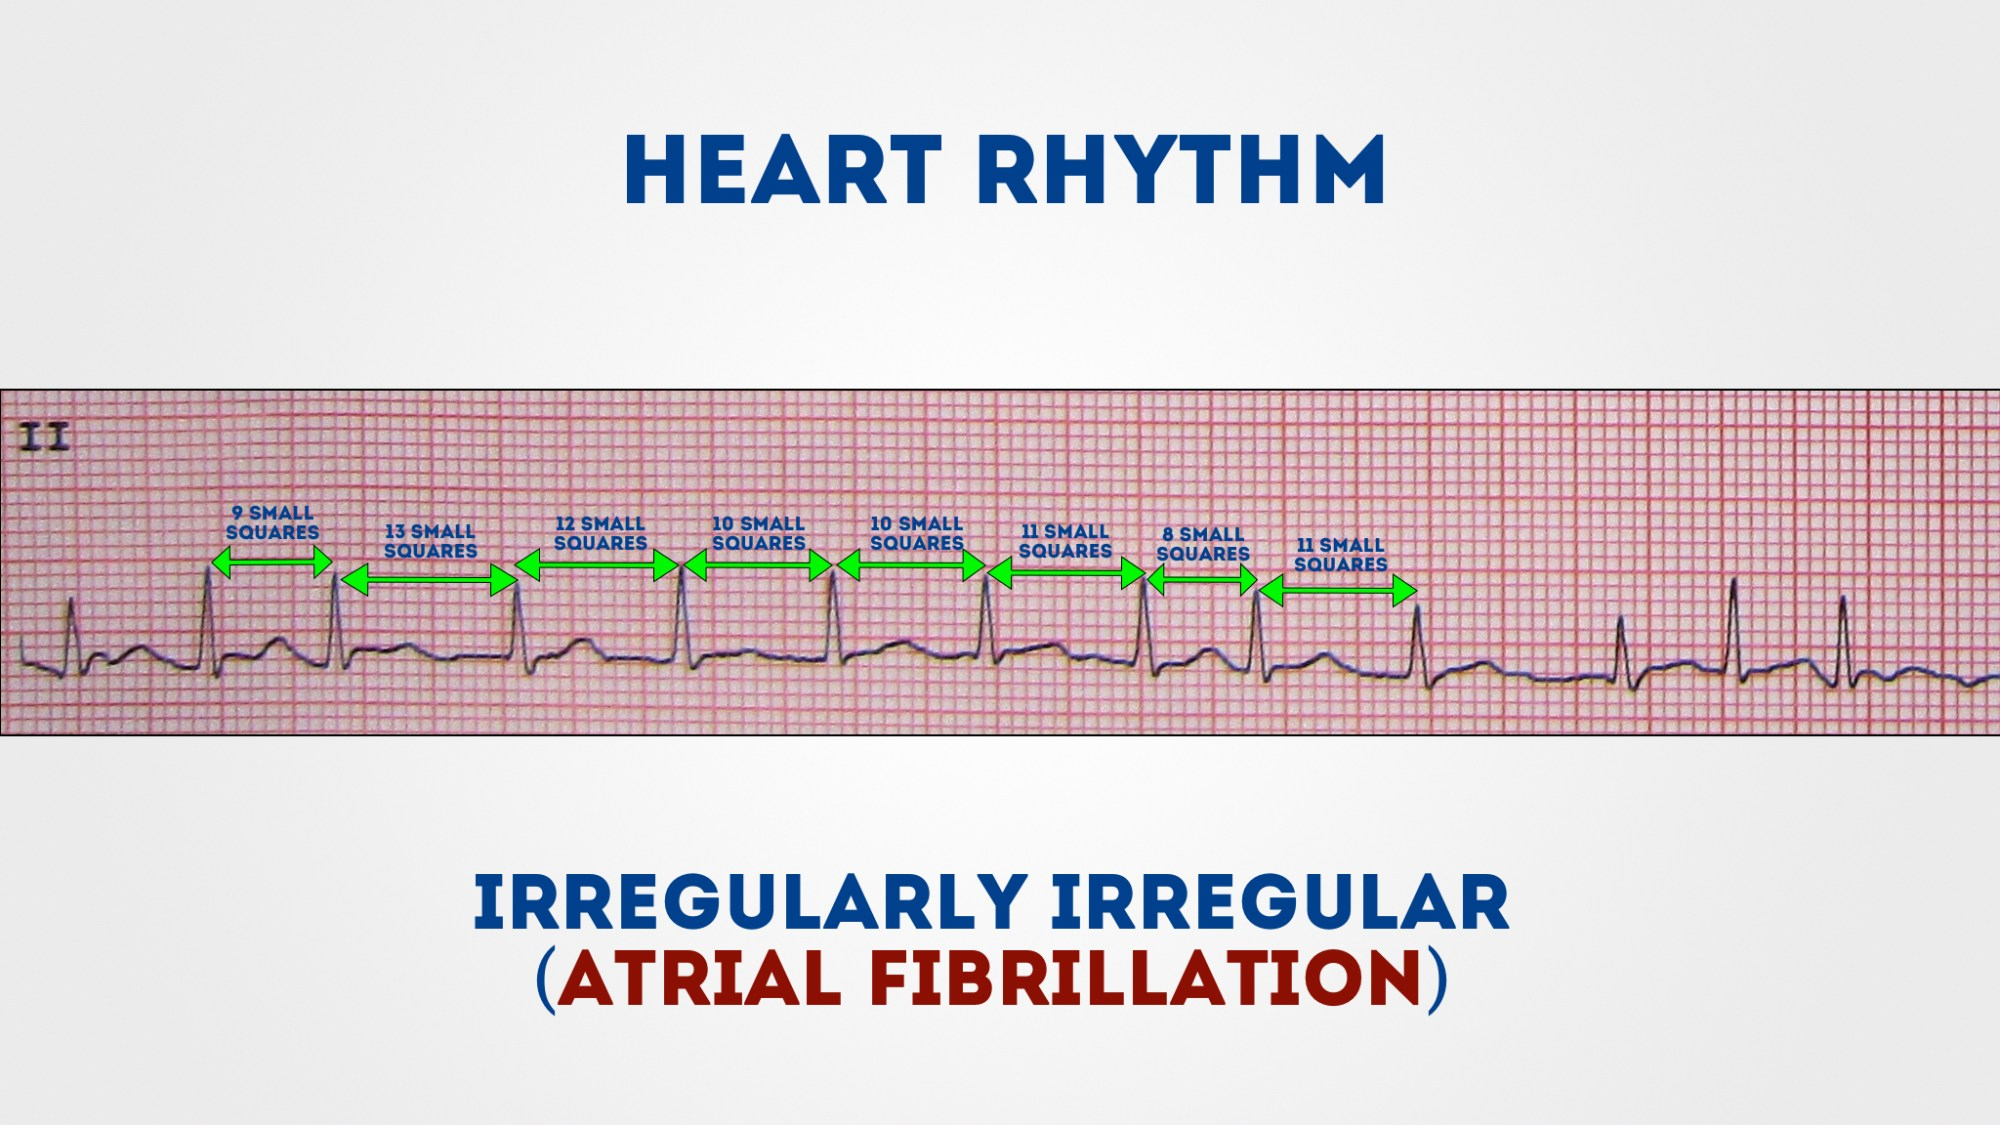 hight resolution of measure the r r intervals to assess if the rhythm is regular or irregular 1